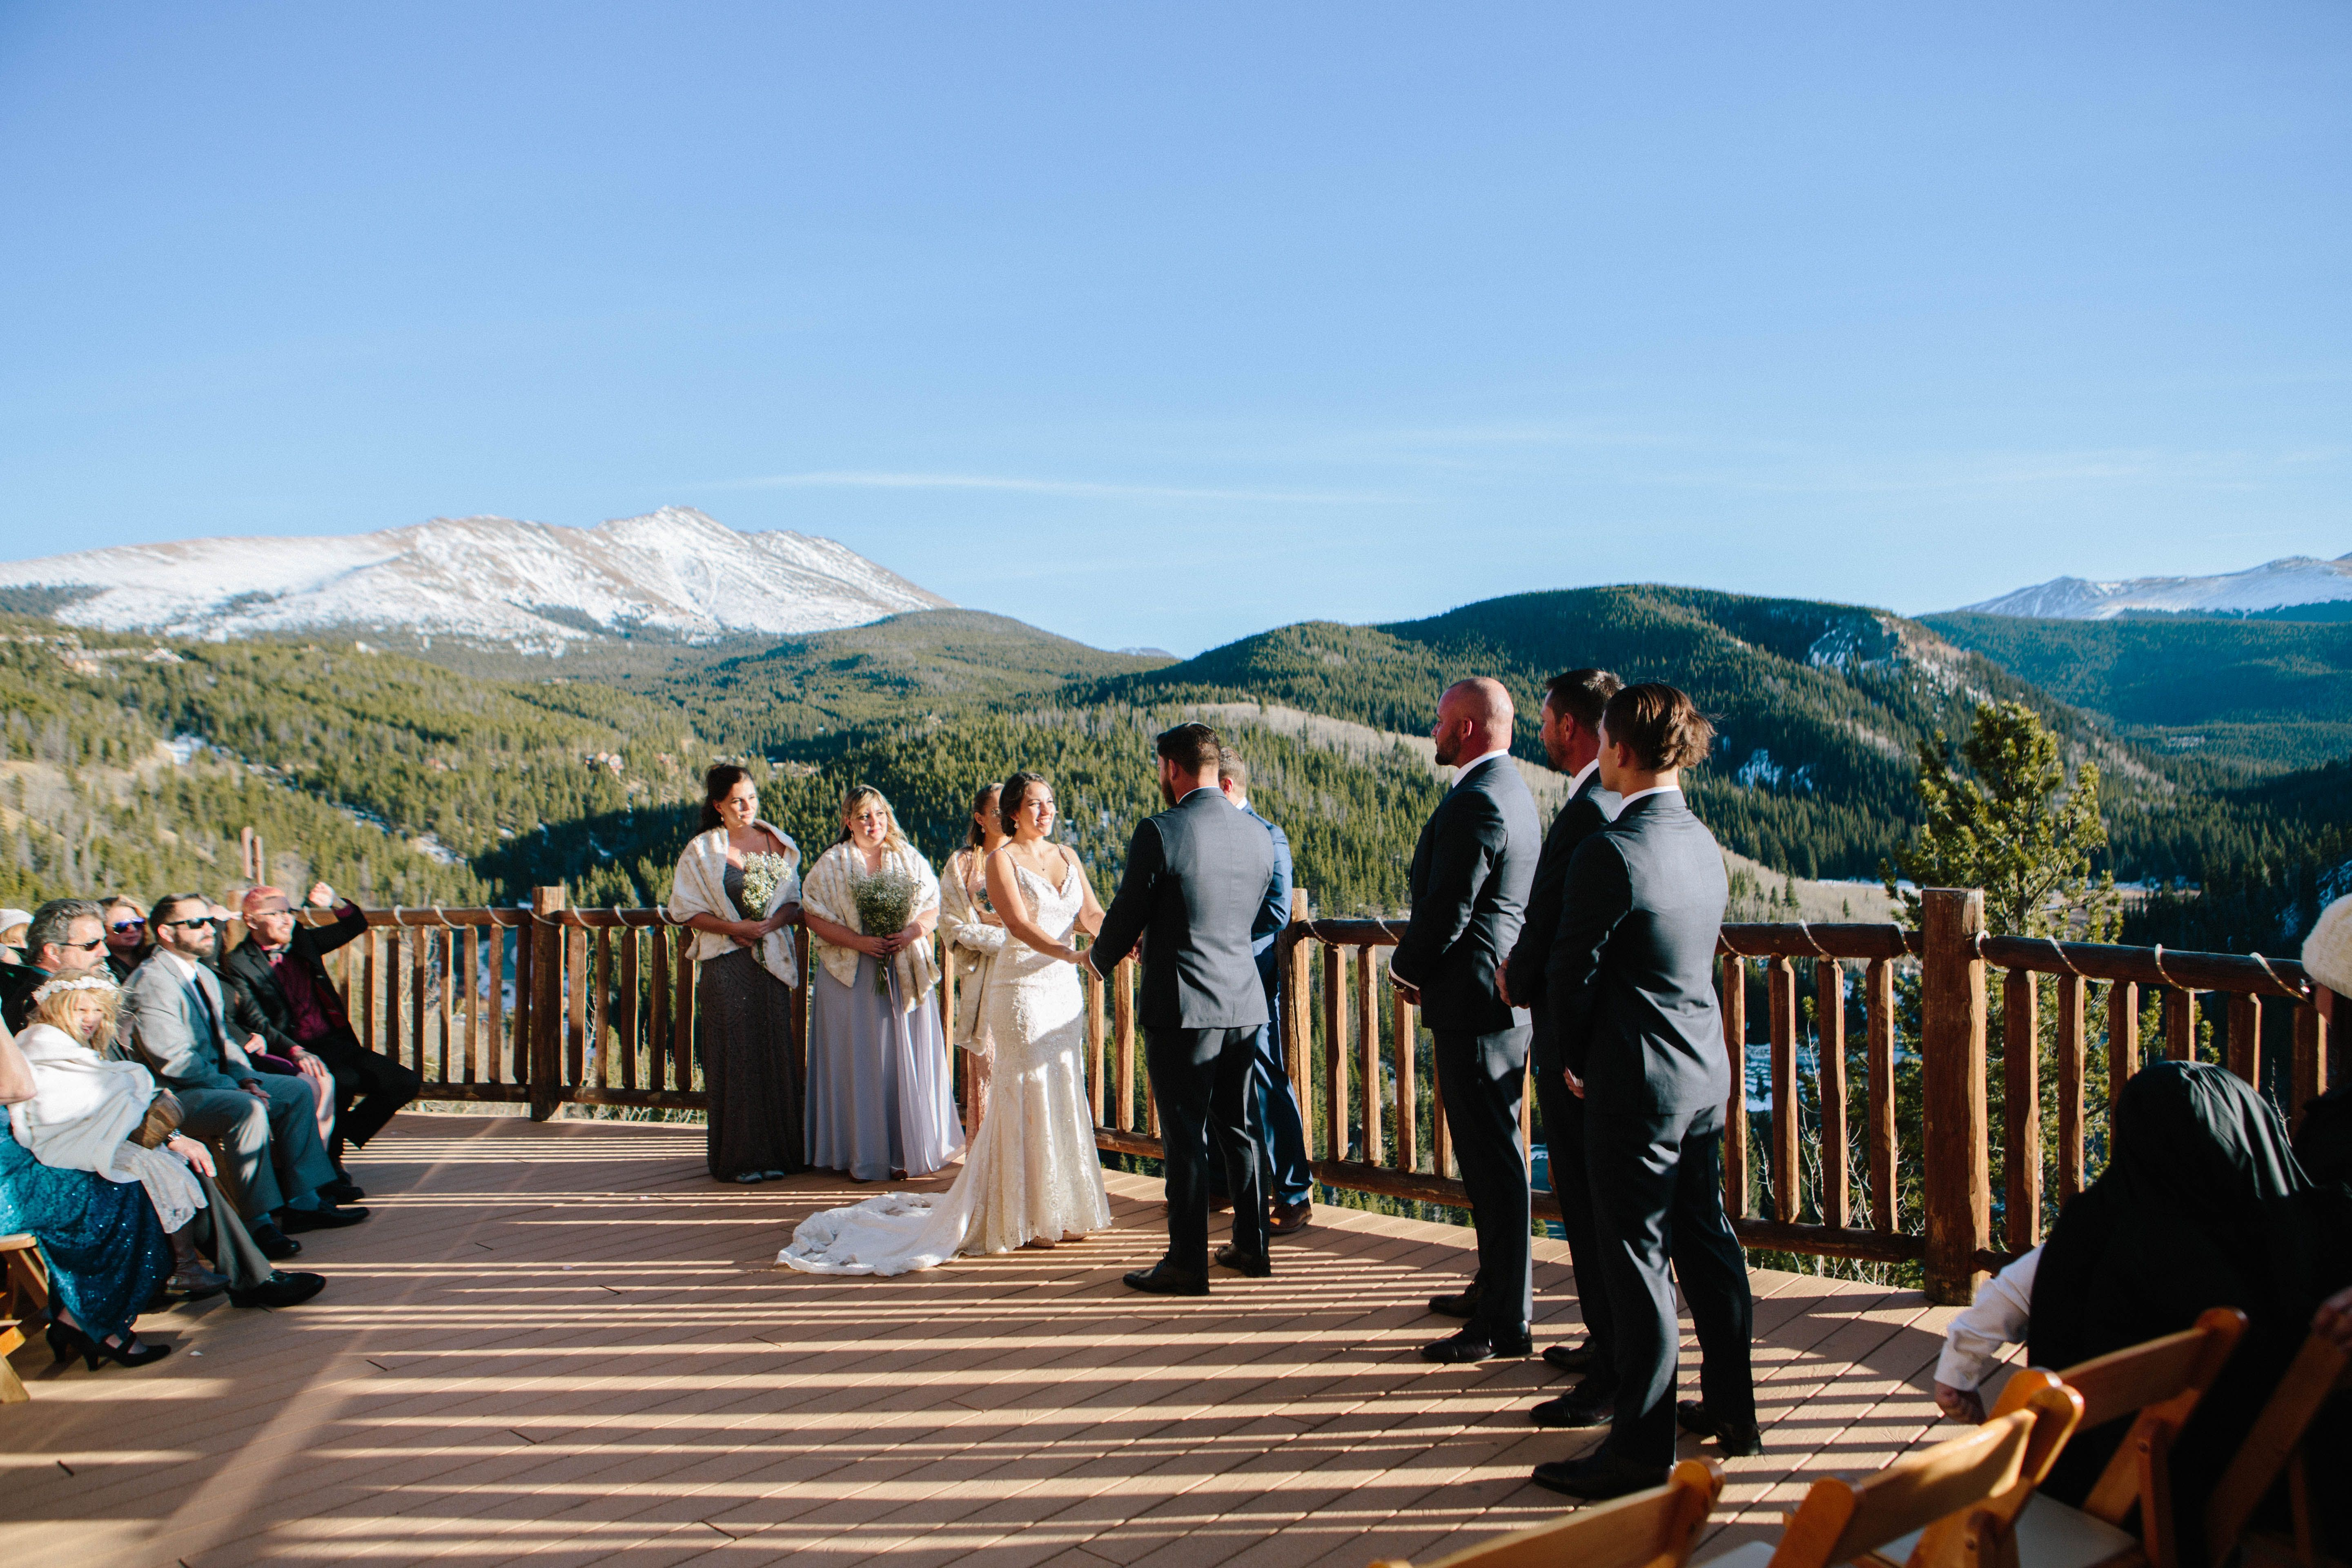 Find this breathtaking venue at the Lodge at Breckenridge